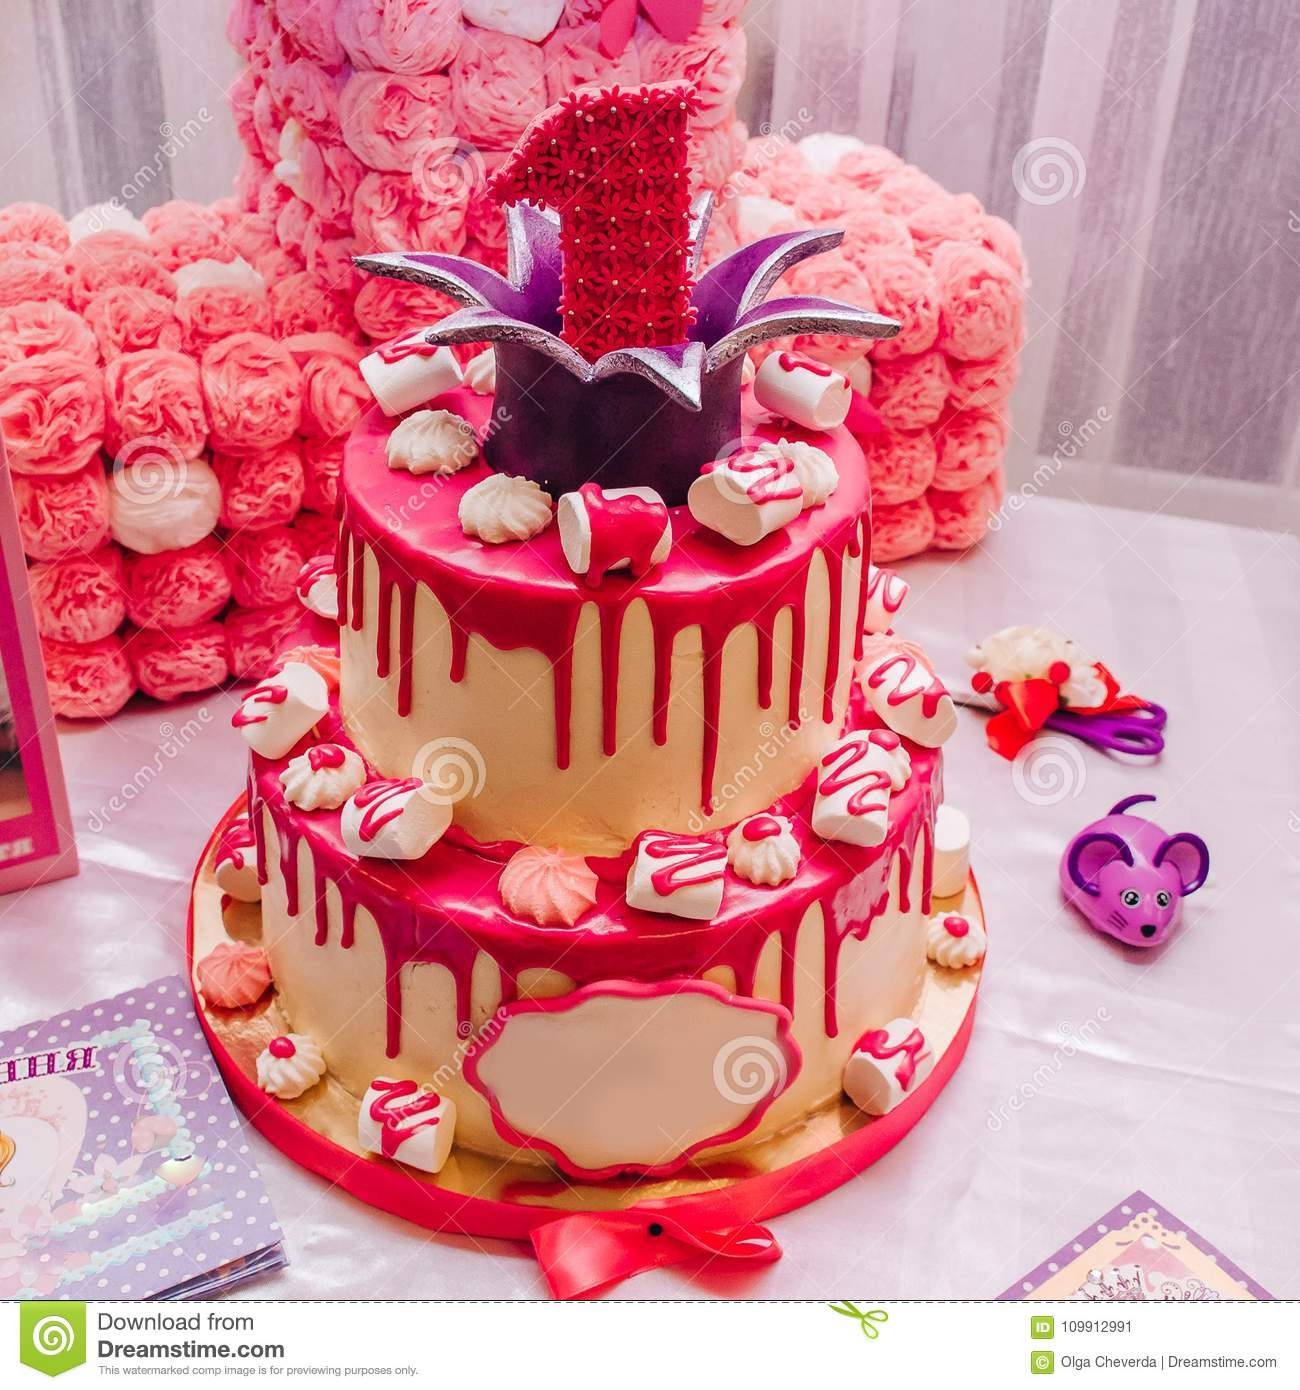 Enjoyable Large Pink Two Tiered Cake With A Unit On Top For A Children S Funny Birthday Cards Online Sheoxdamsfinfo